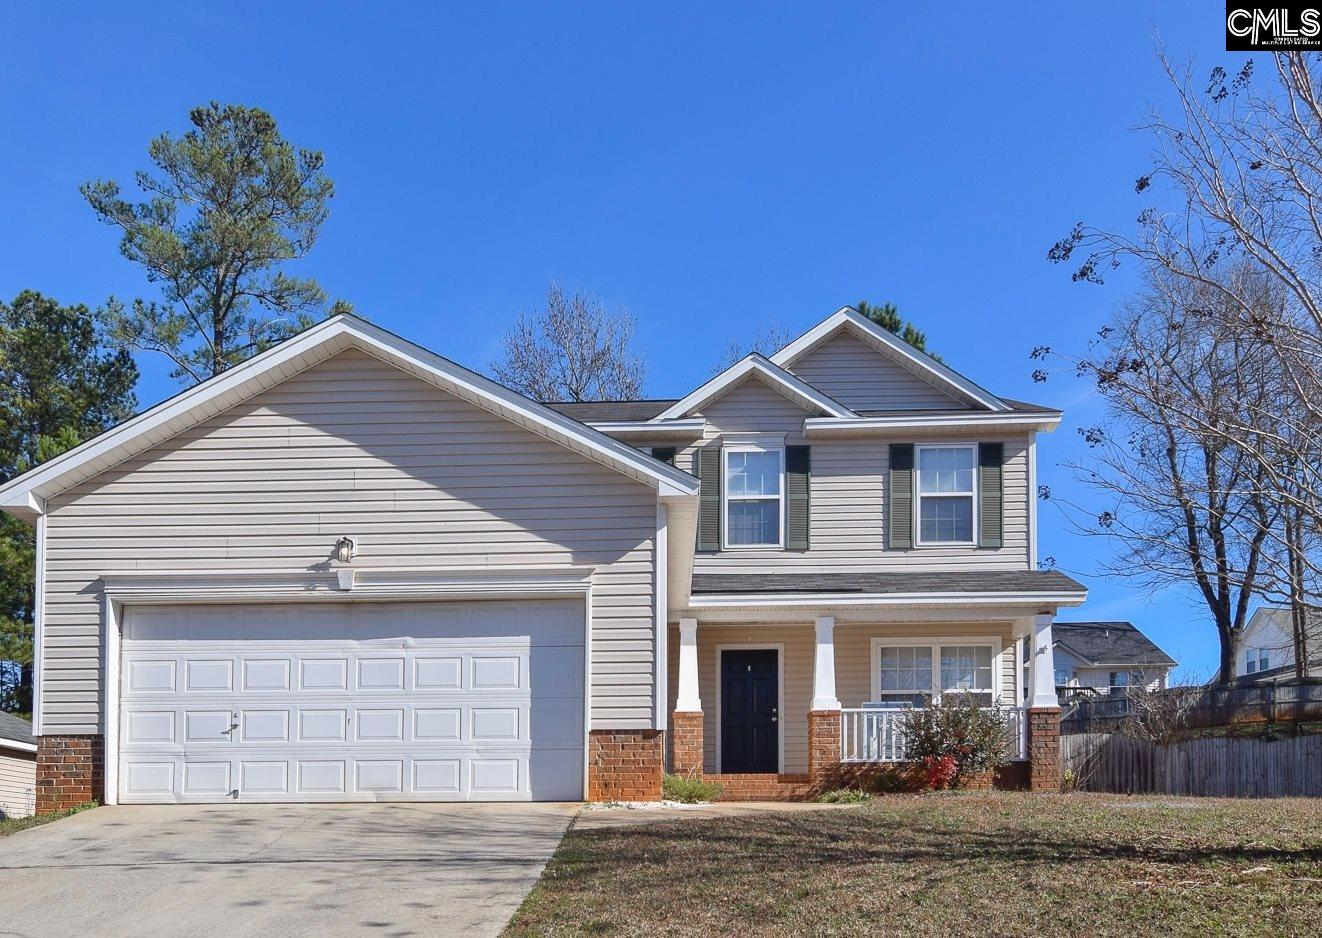 258 Farming Creek Lexington, SC 29072